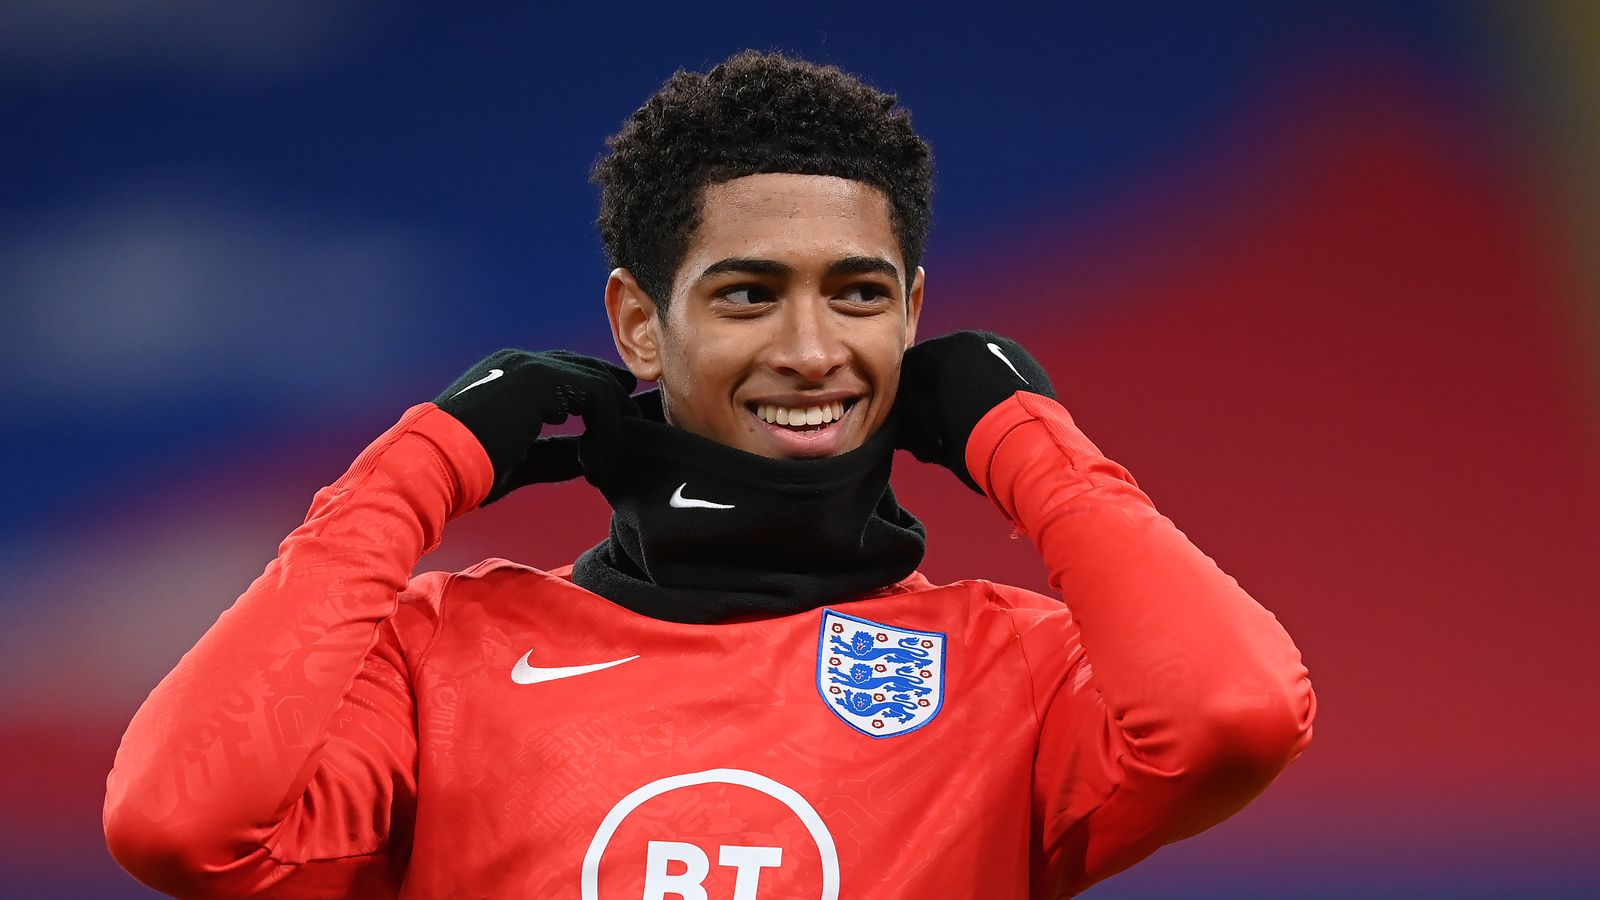 Jude Bellingham England Call Up For Borussia Dortmund Player In Doubt Due To Coronavirus Restrictions Football News Sky Sports